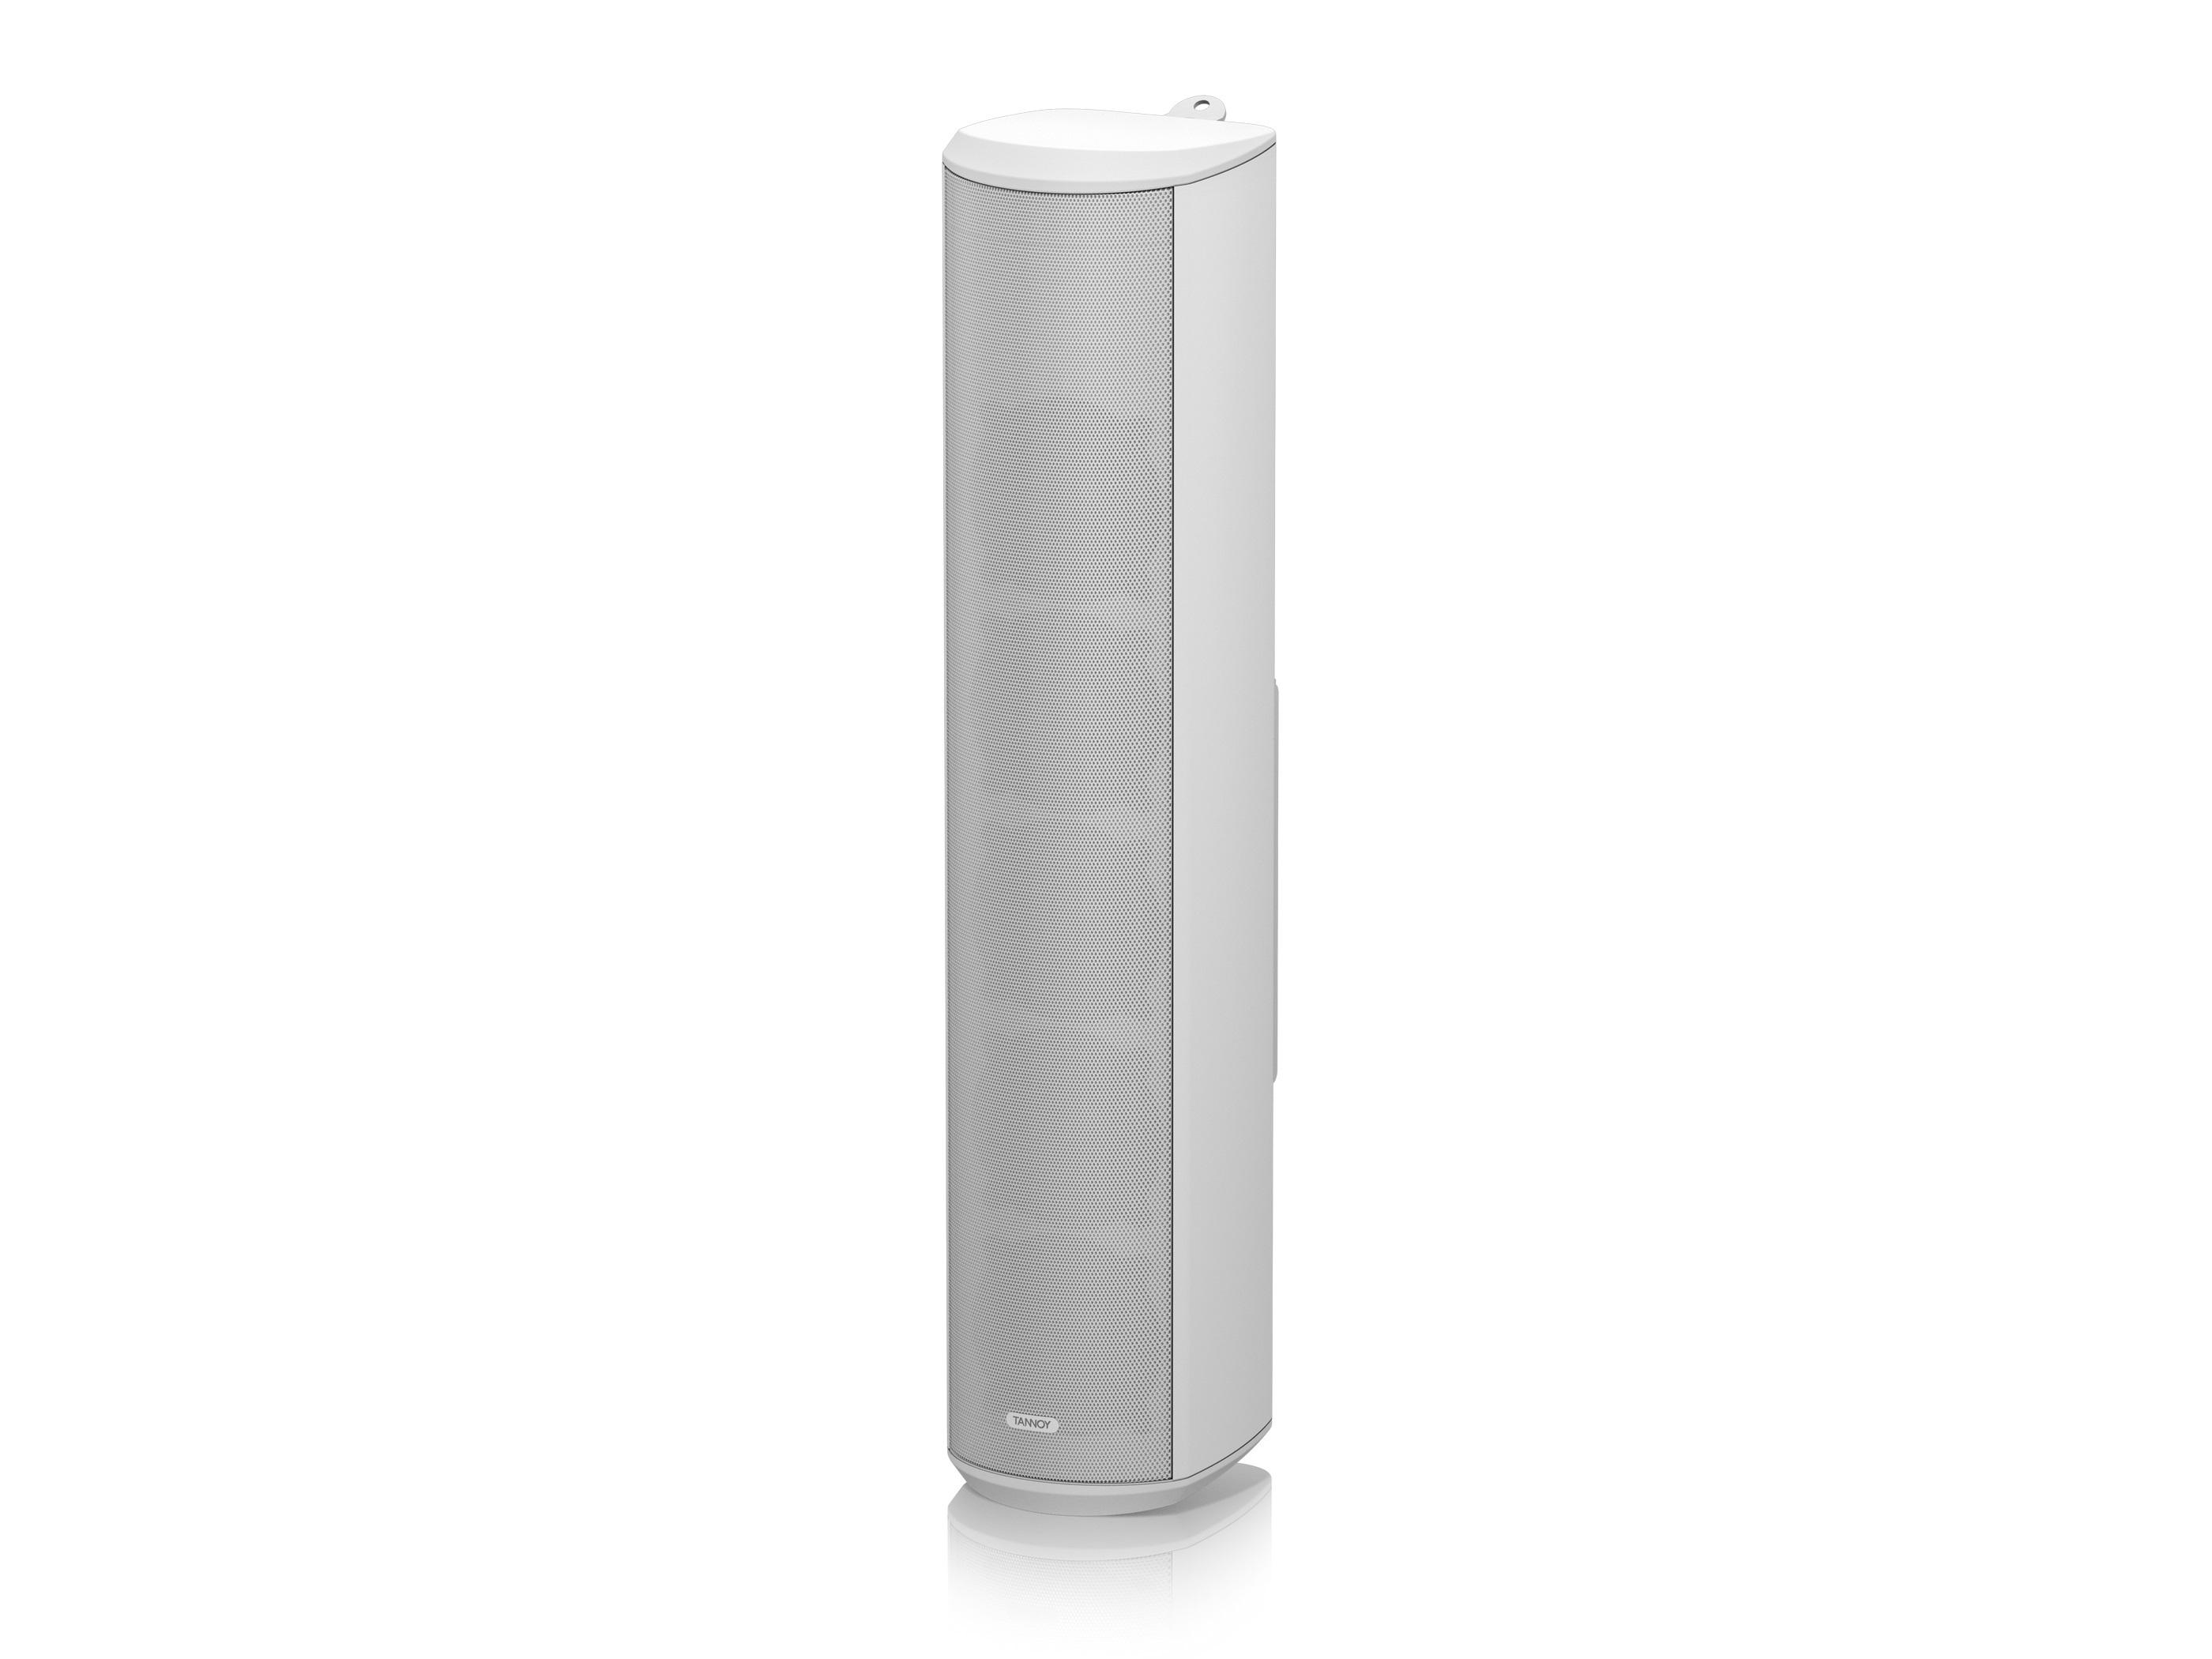 Tannoy VLS 5-WH Passive Column Array Loudspeaker with 5 Mid Range Drivers for Speech Only Installation Applications (White)